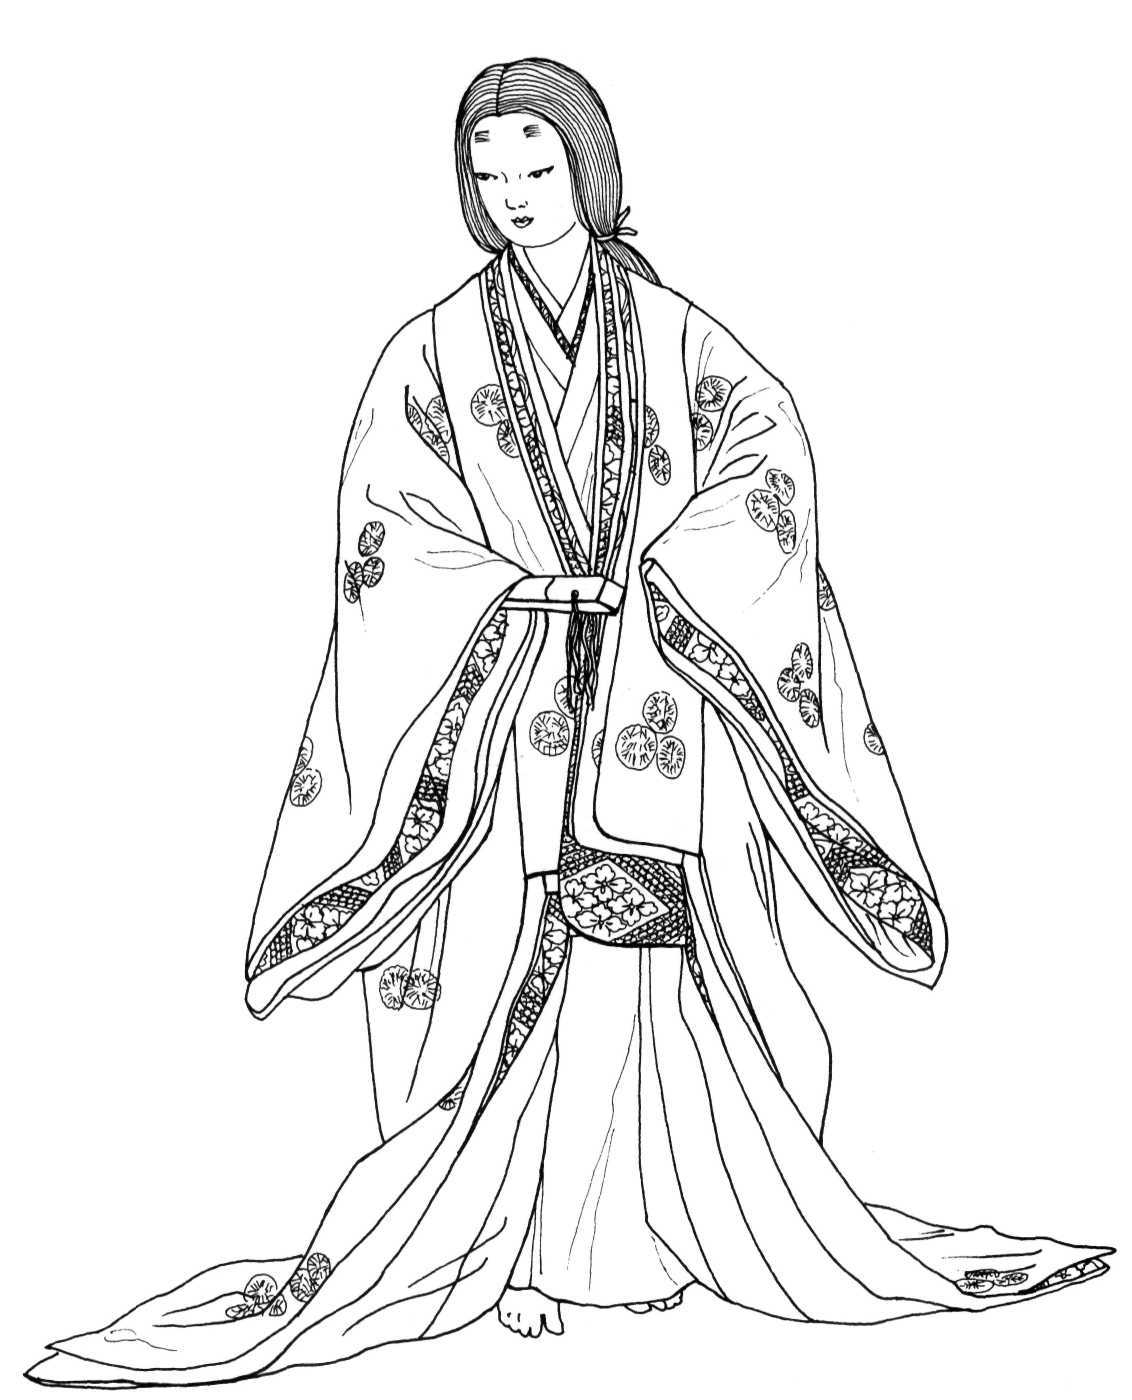 momoyama upper warrior class formal dress many layers of robes